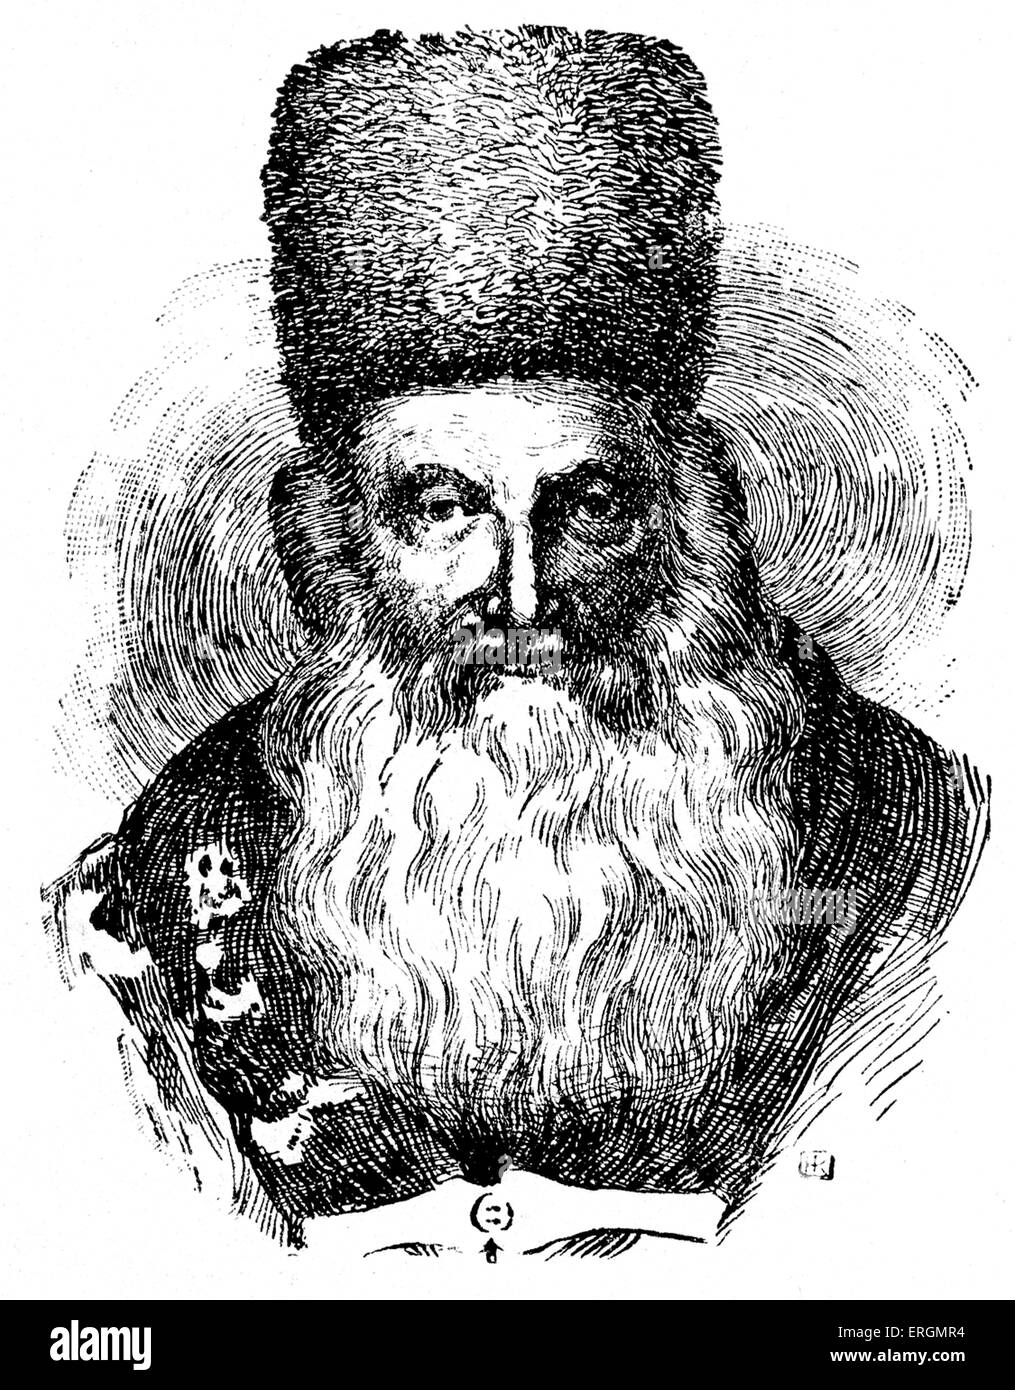 Mordecai (Marcus) Benet (1753-1829)  -Hungarian Rabbi. Benet was a scholar of the Talmud and proponent of its study - Stock Image